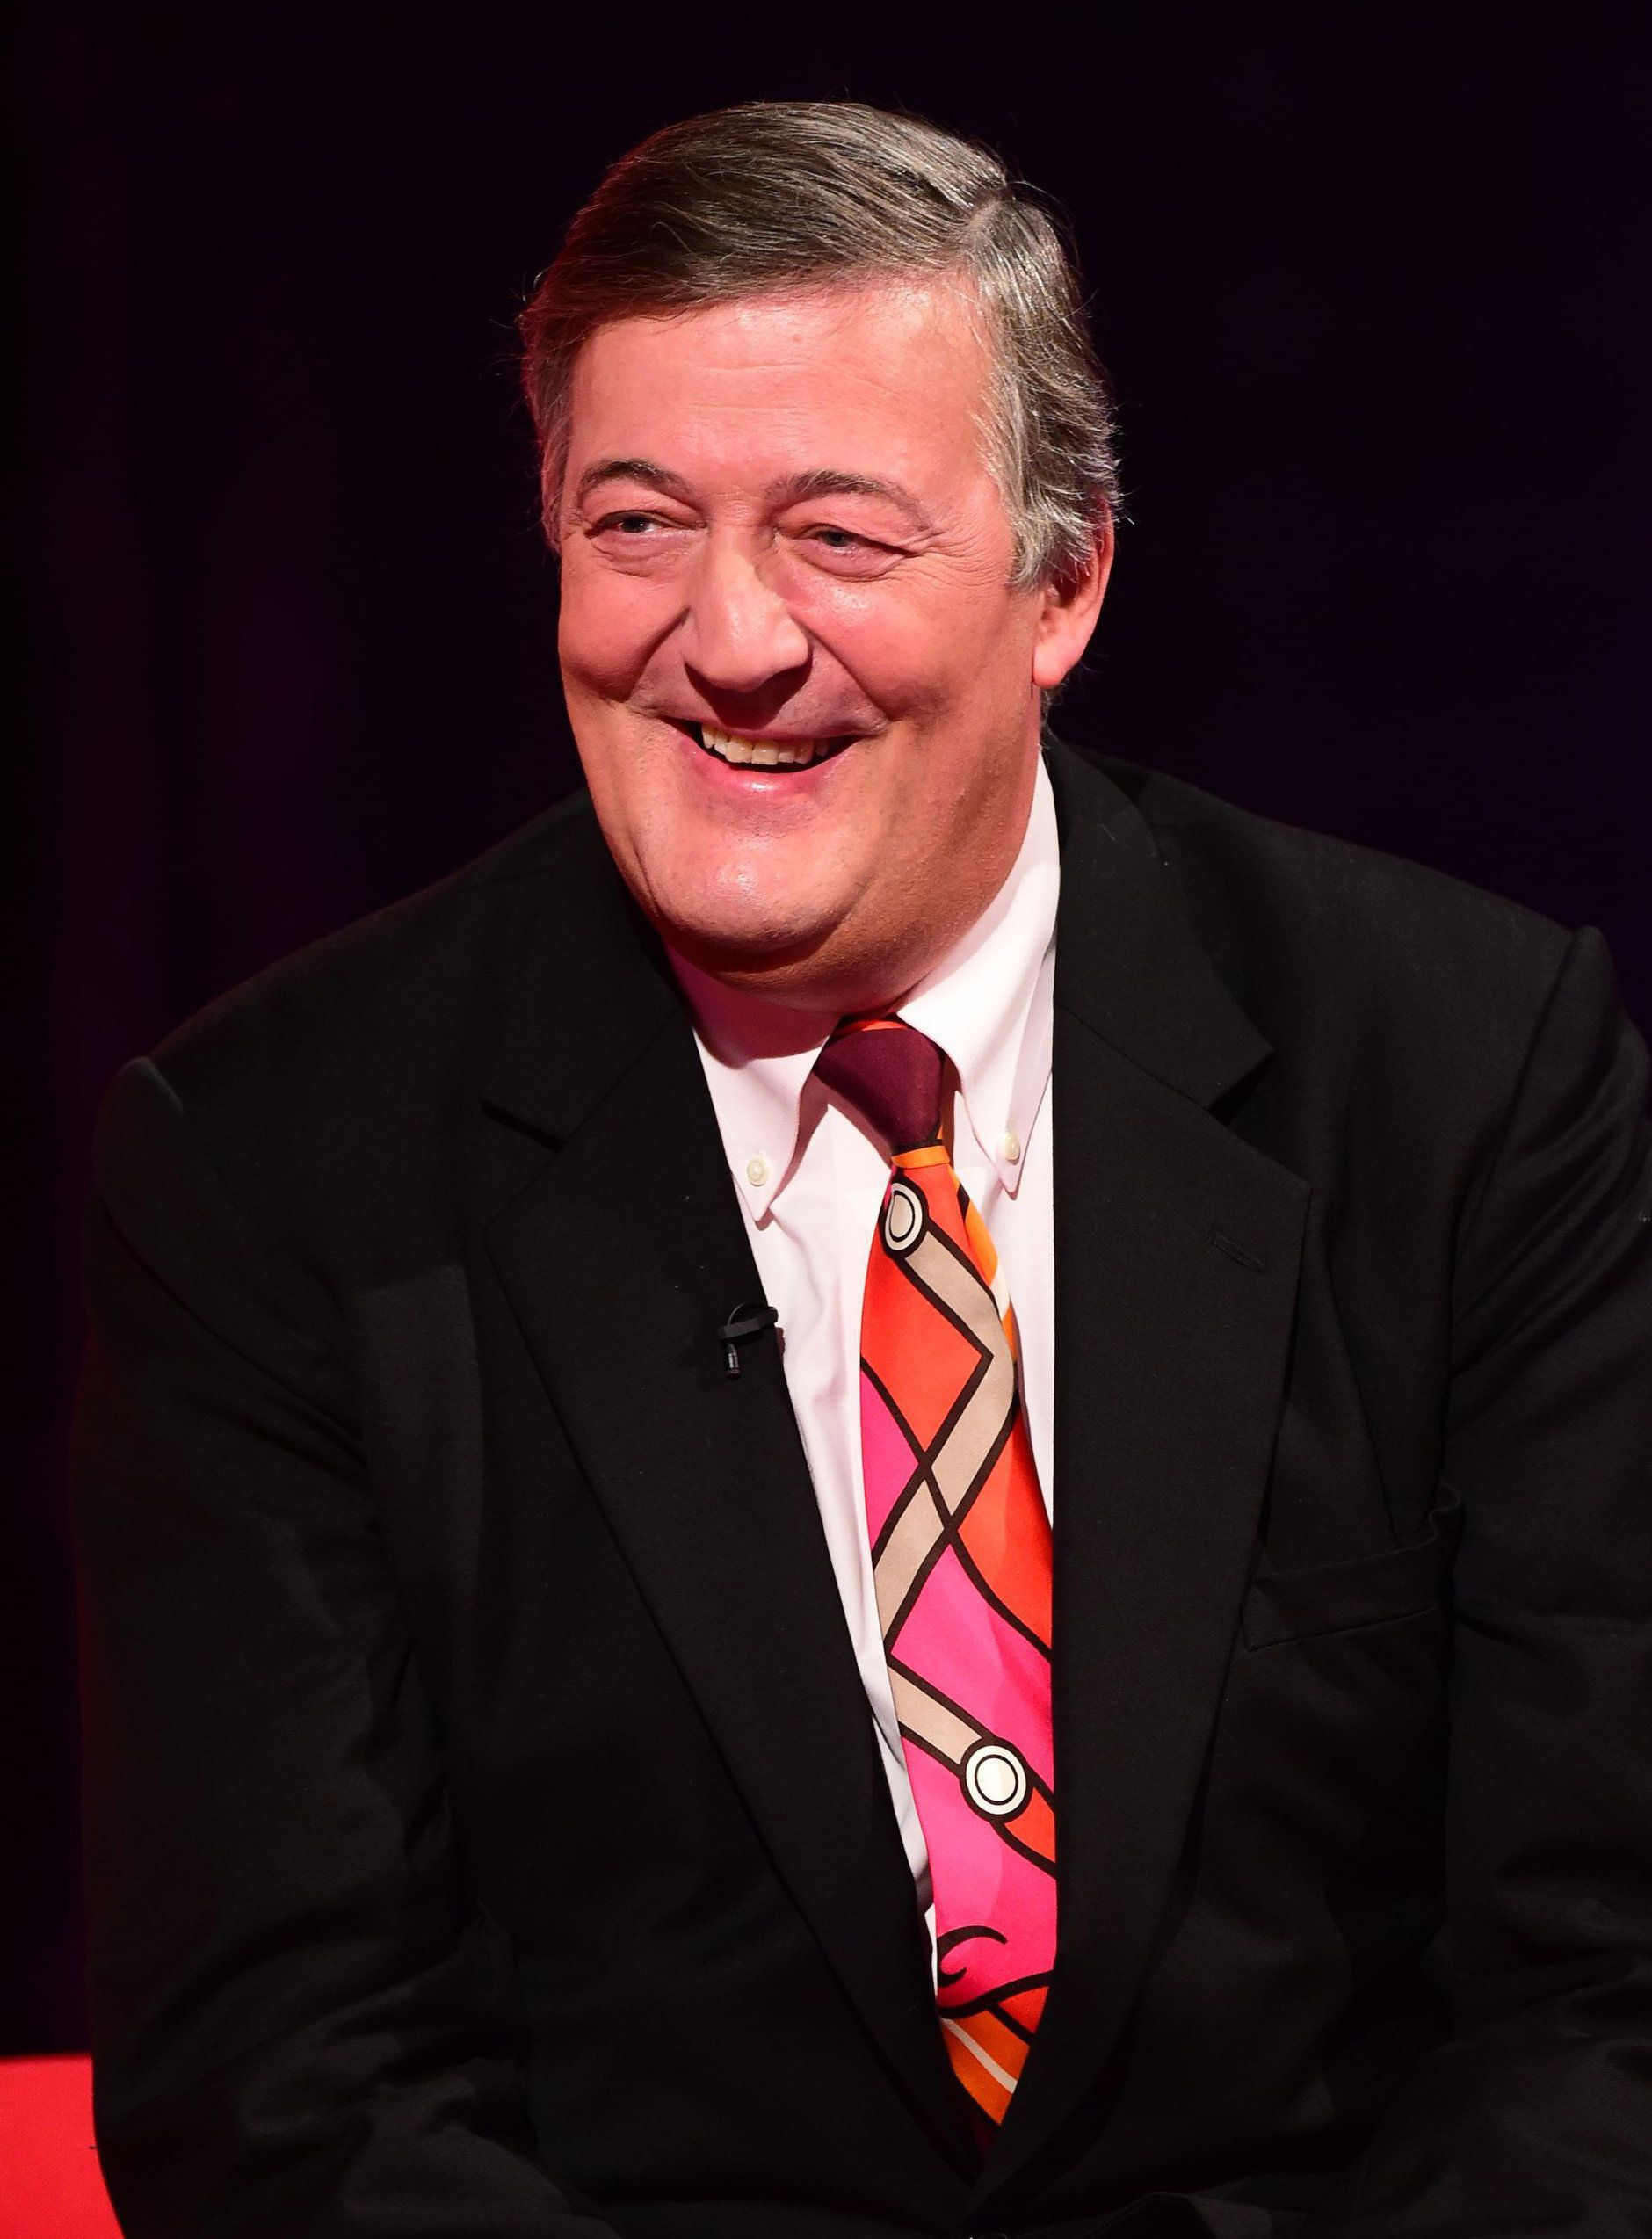 Stephen Fry Admits He Fears Becoming 'Professionally Mentally Unstable' As He Opens Up About